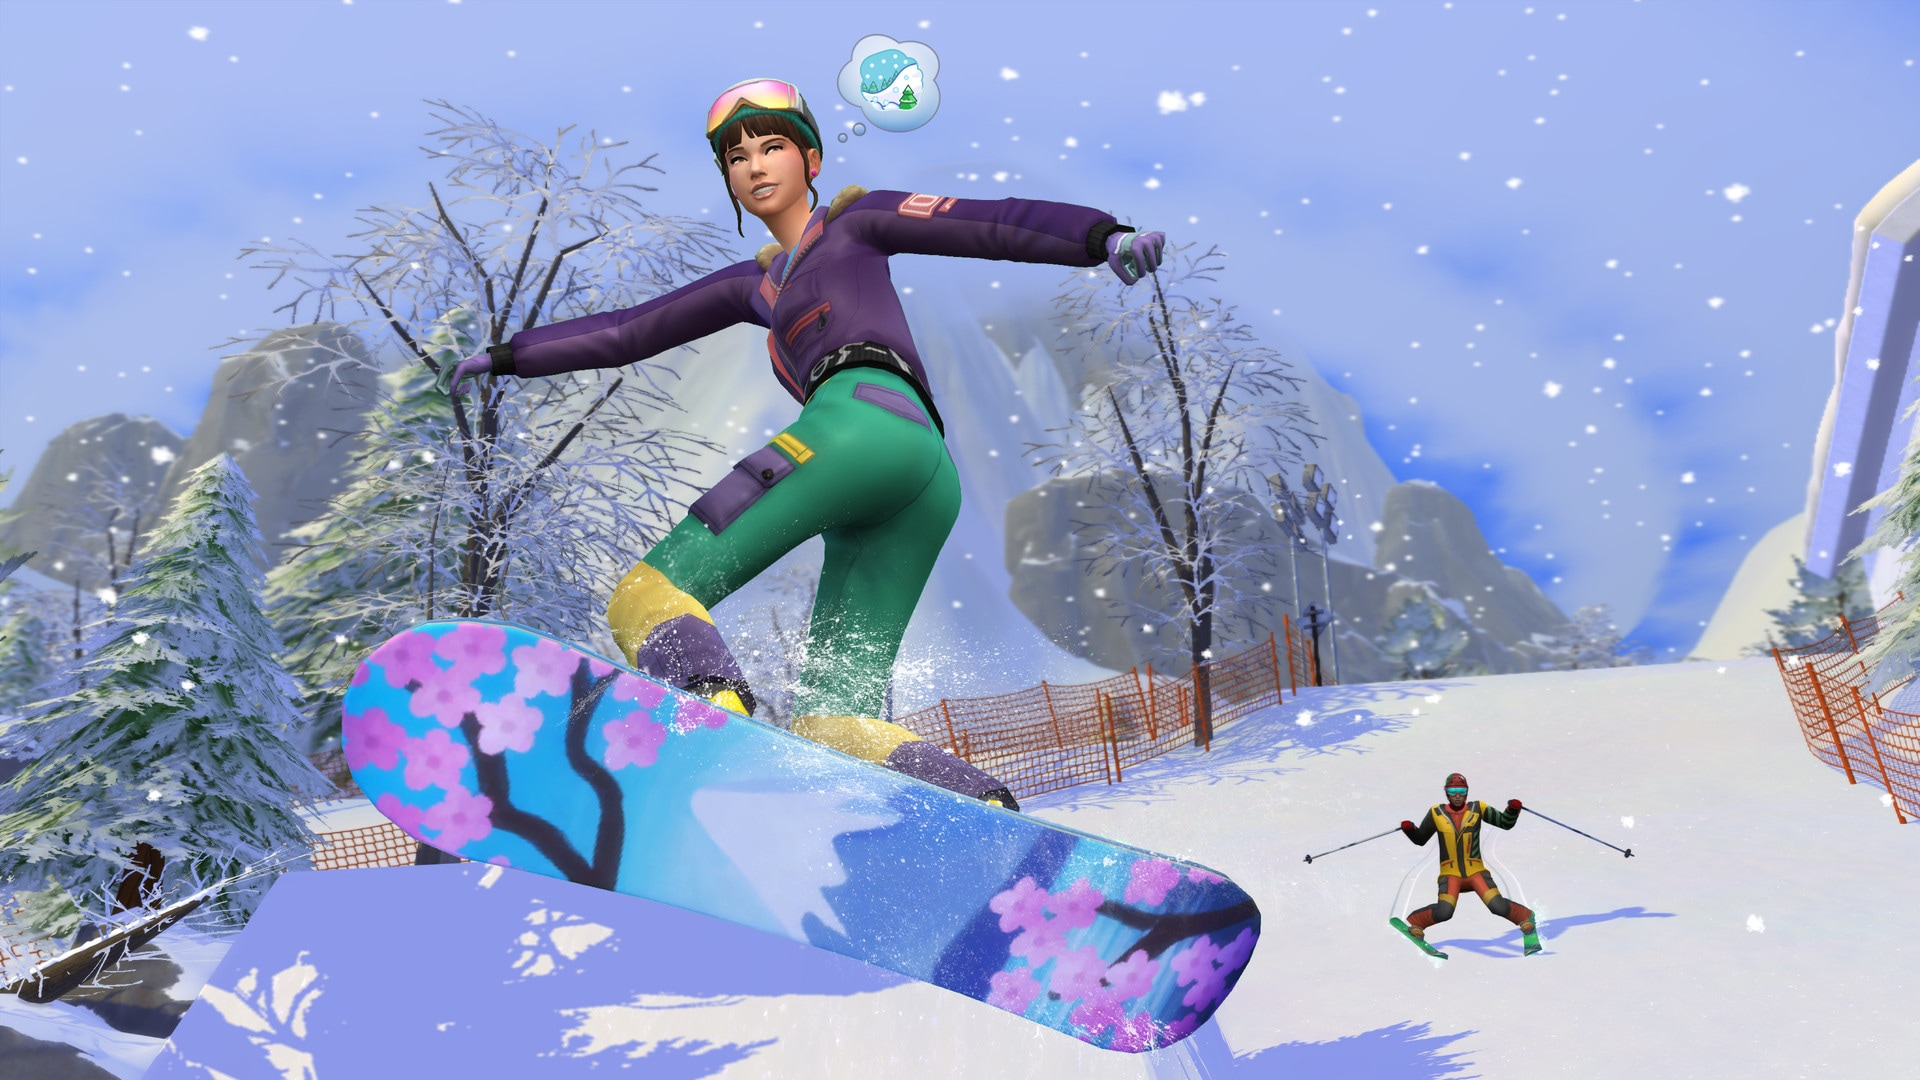 The Sims 4 Snowy Escape Pack (PC) - Origin Key - GLOBAL - 2